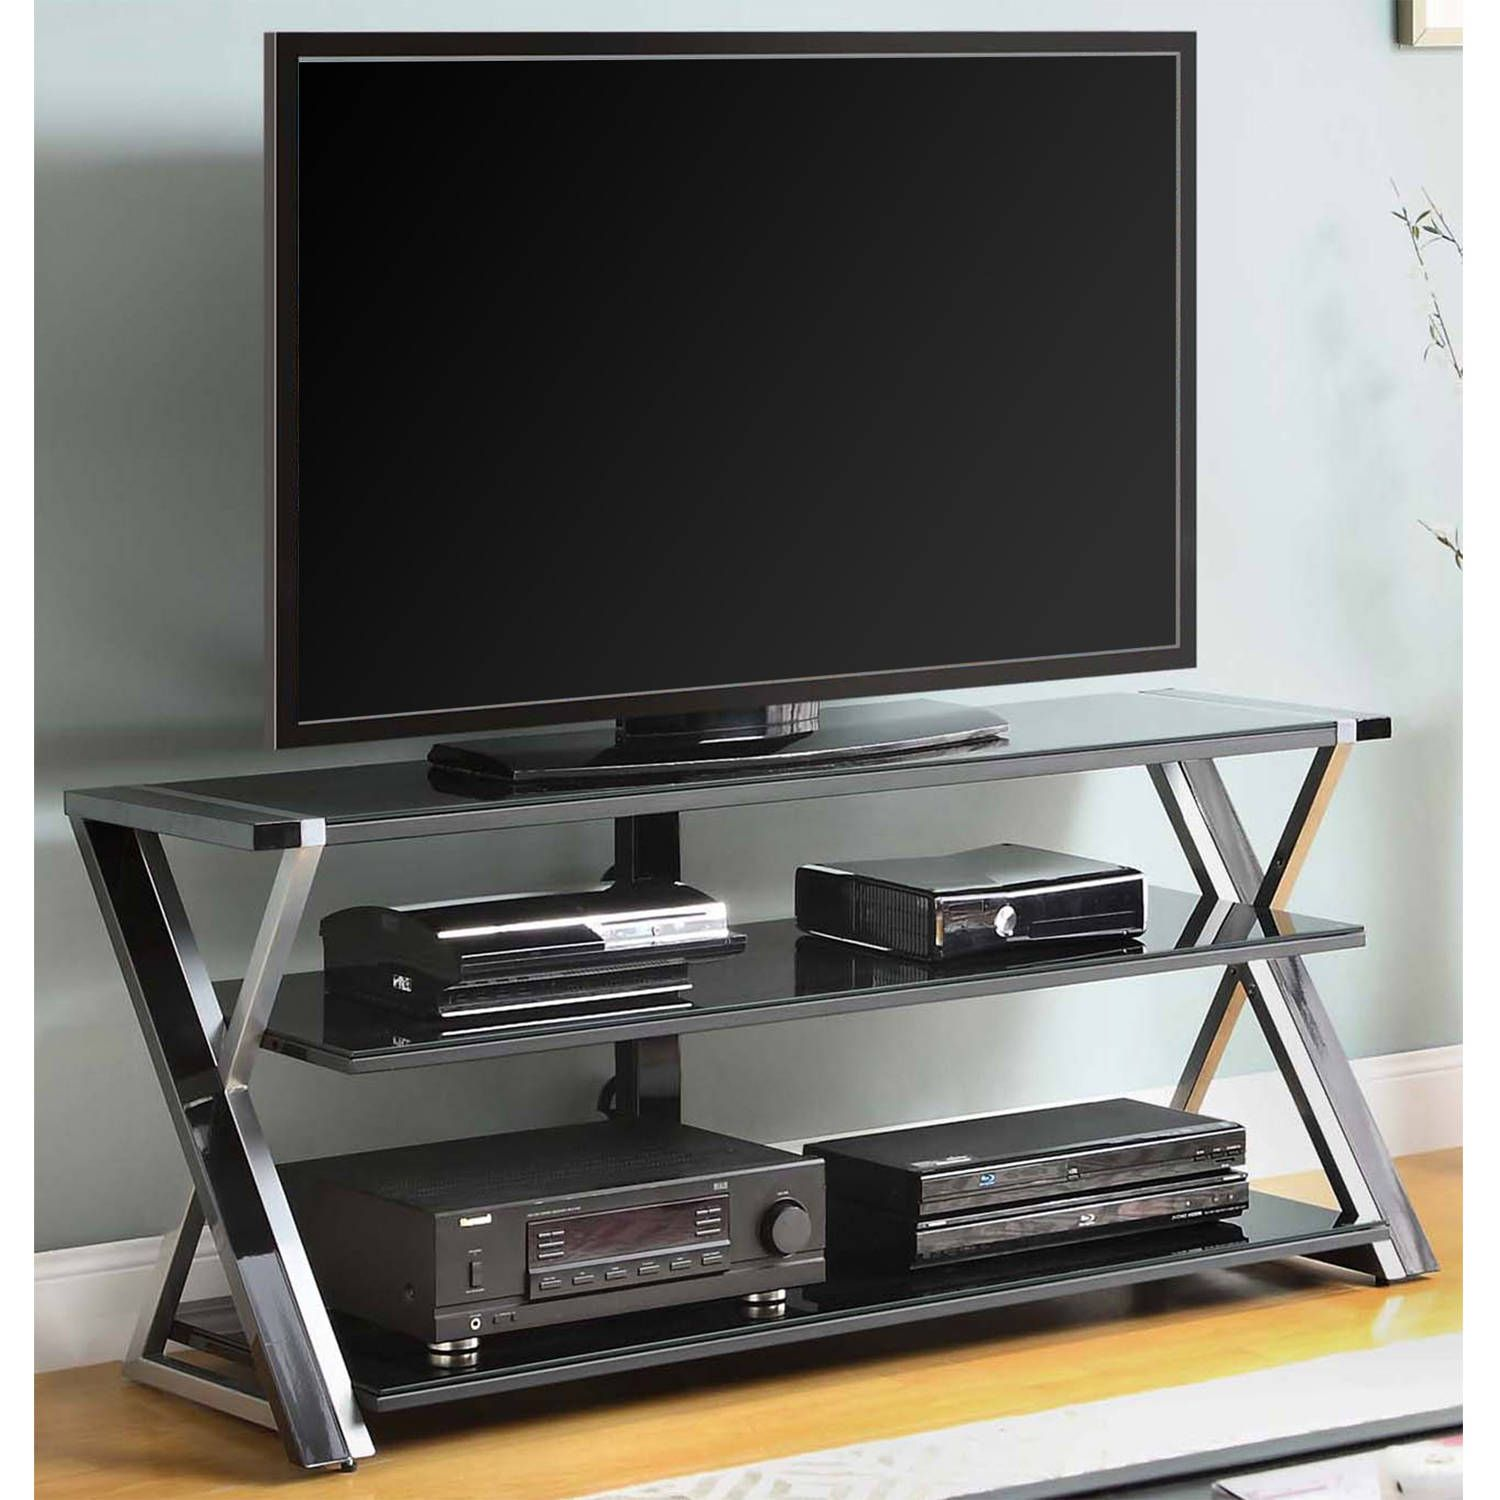 40 Reference Of Tv Stand 65 Inch Target In 2020 Glass Tv Stand Black Tv Stand Black Glass Tv Stand